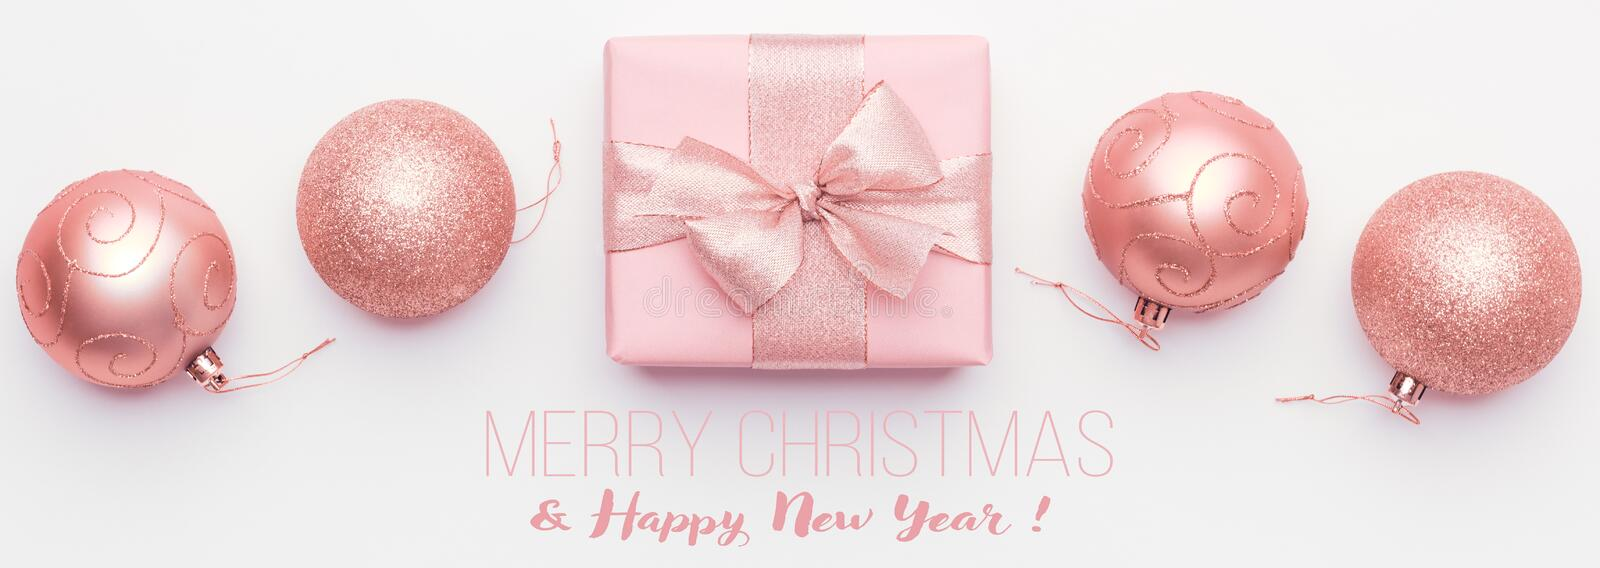 Christmas banner. Beautiful pink christmas gift and ornament baubles isolated on white background. Wrapped xmas box stock image